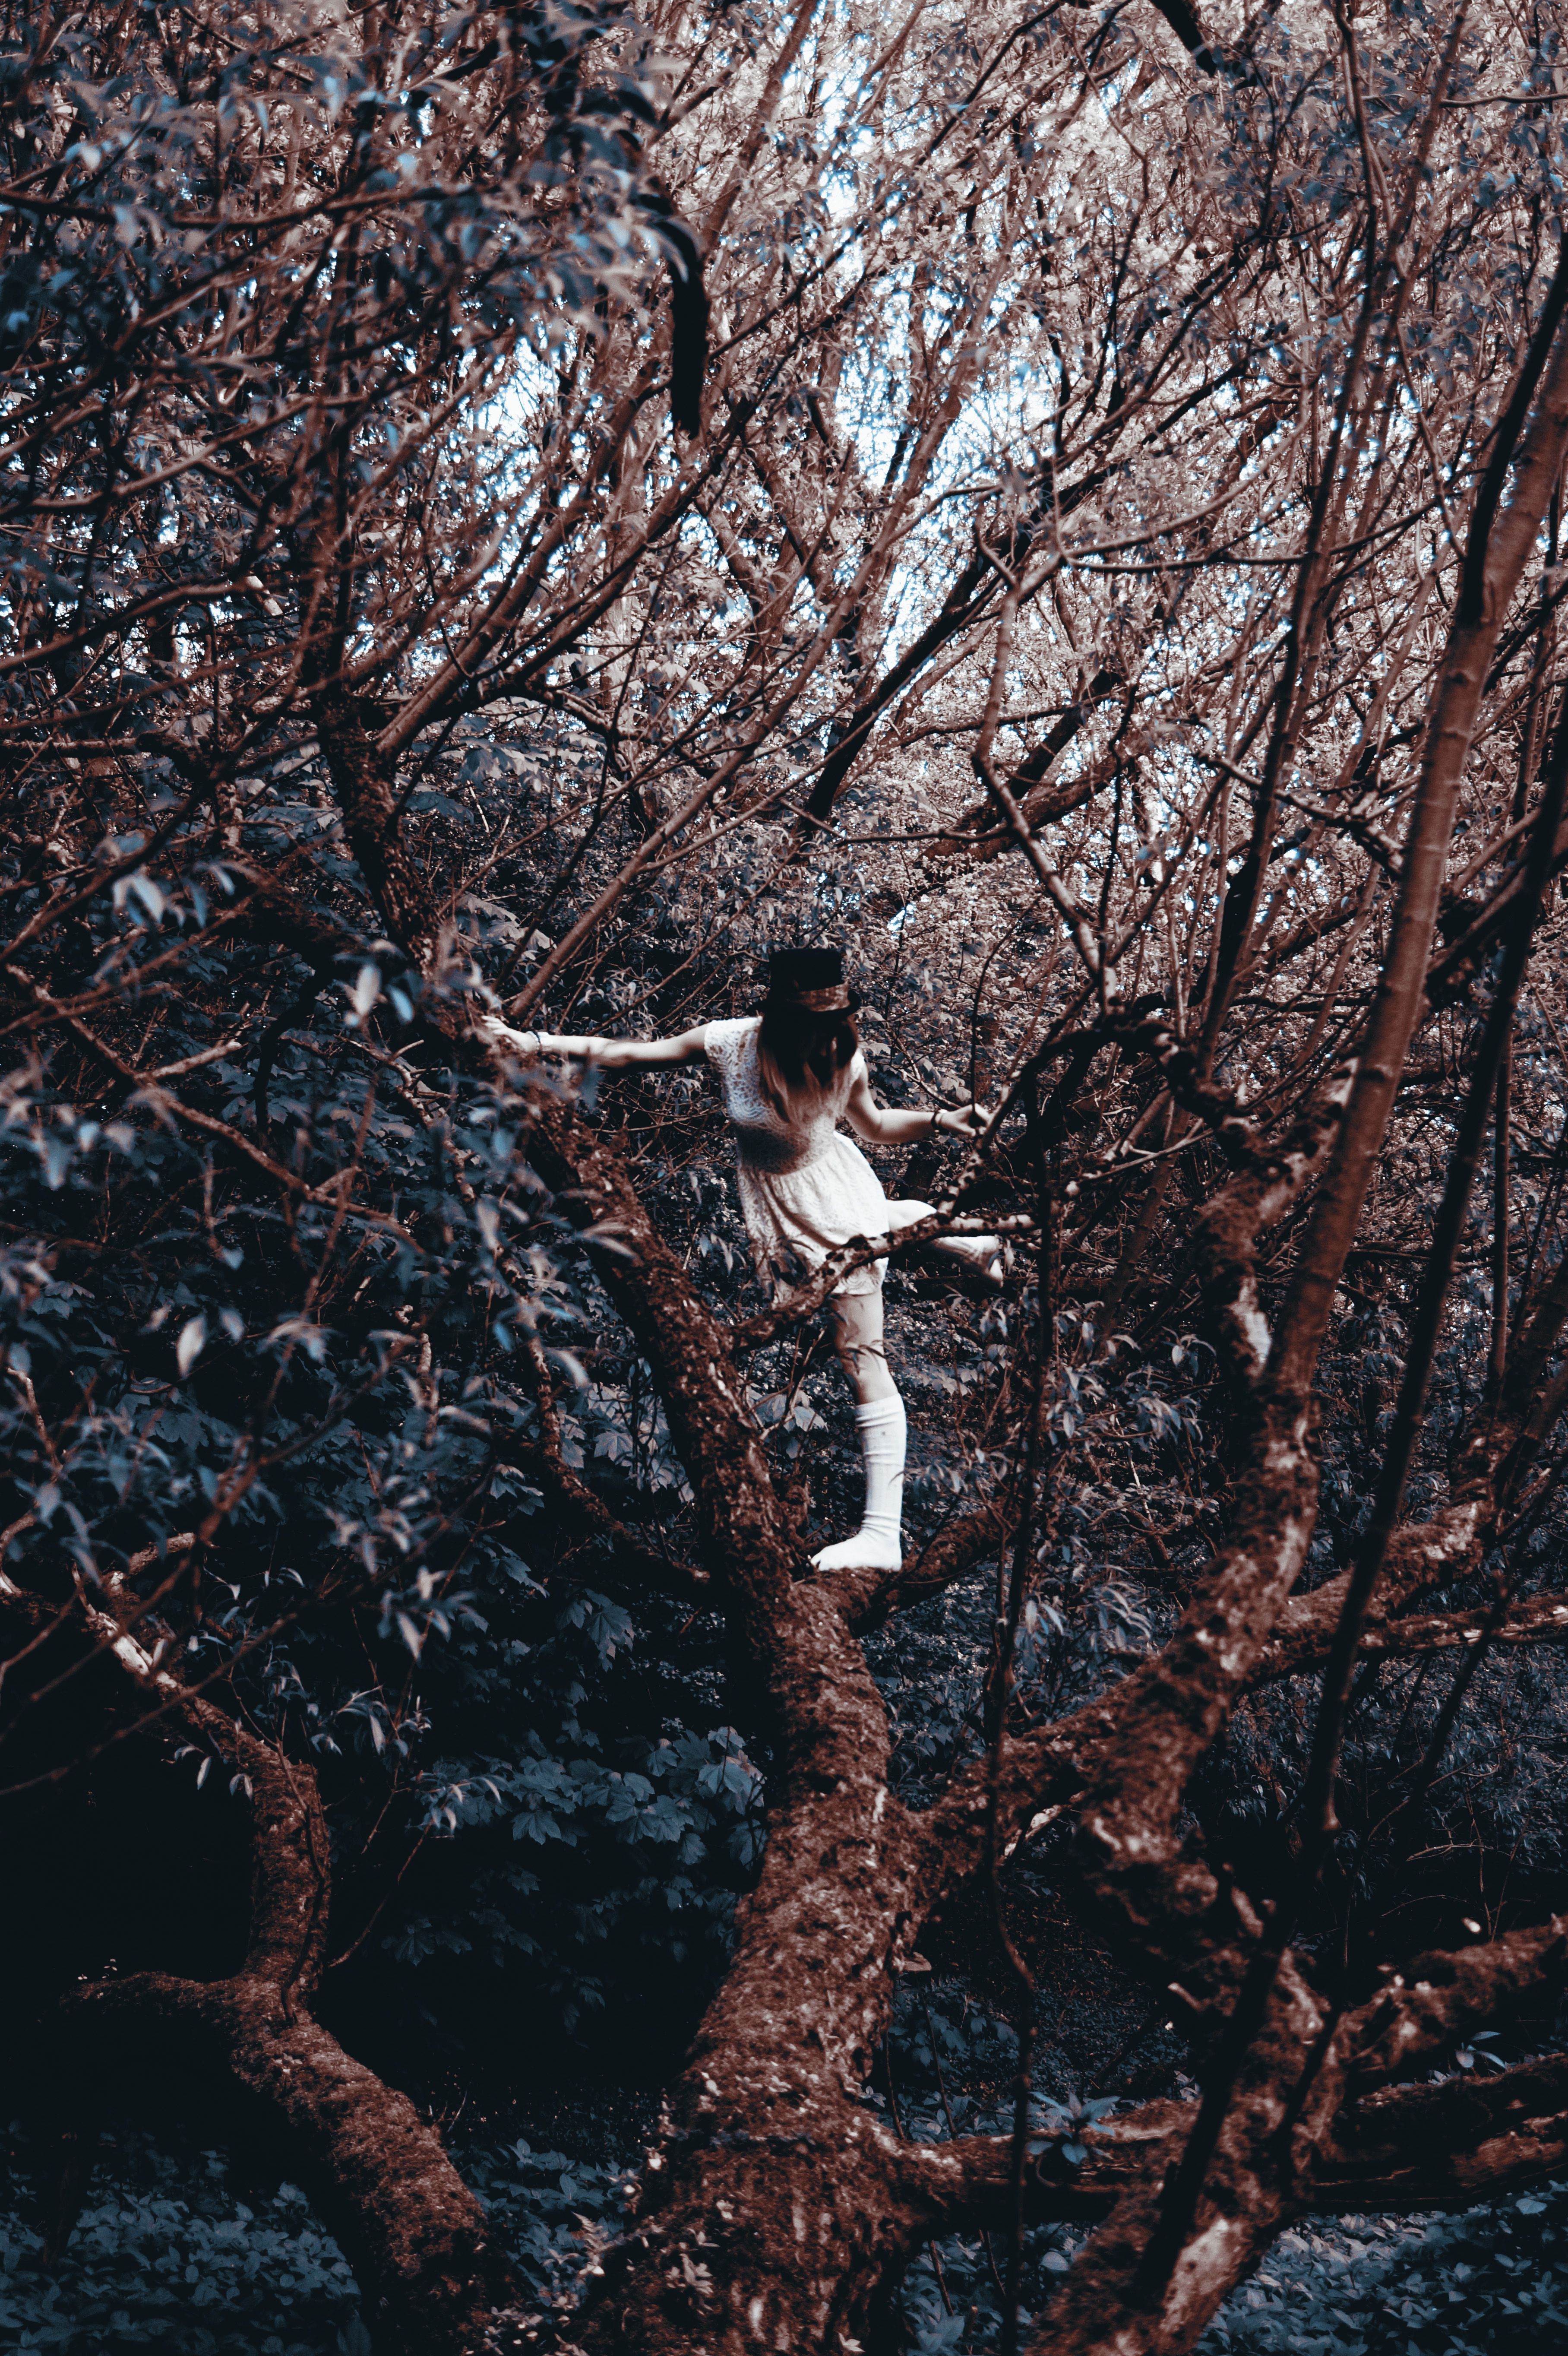 Photography Of Models In The Woods With Vintage, Gothic, And